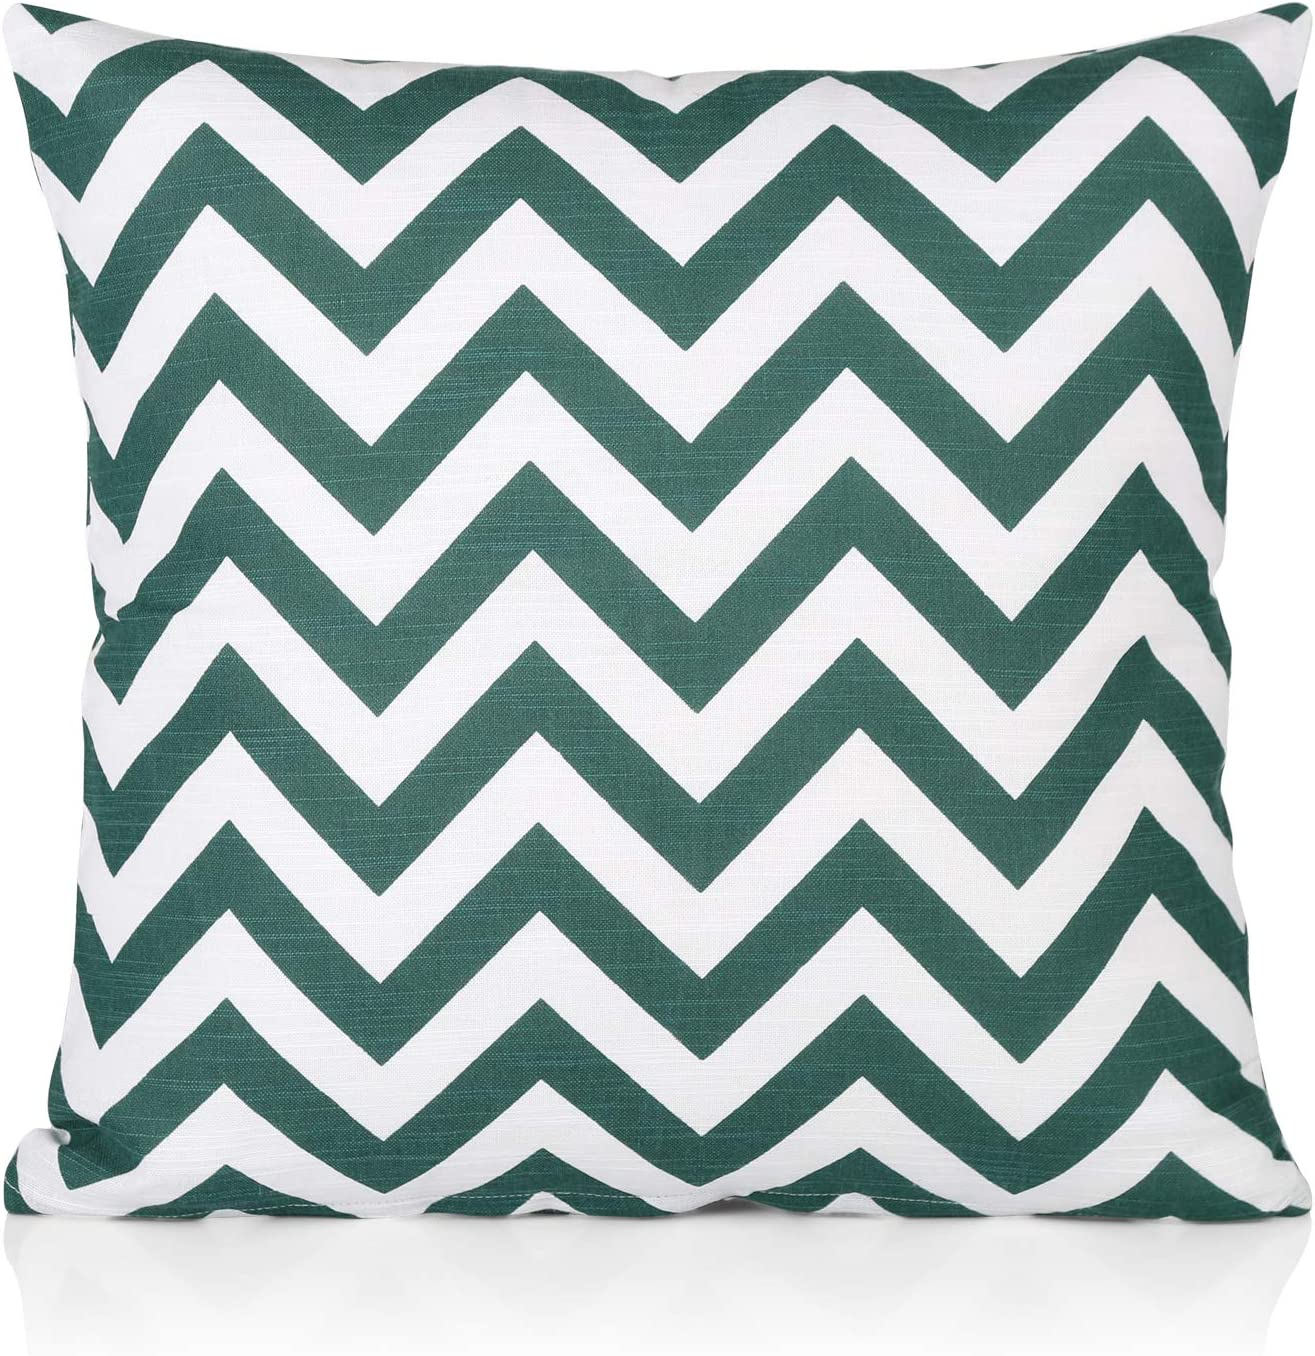 """45x45 Cm Set of 4, Forest Green//White Pattern Penguin Home 100/% Cotton Decorative Double Sided Square Cushion Covers with Invisible Zipper 45cm x 45cm x 18/"""""""